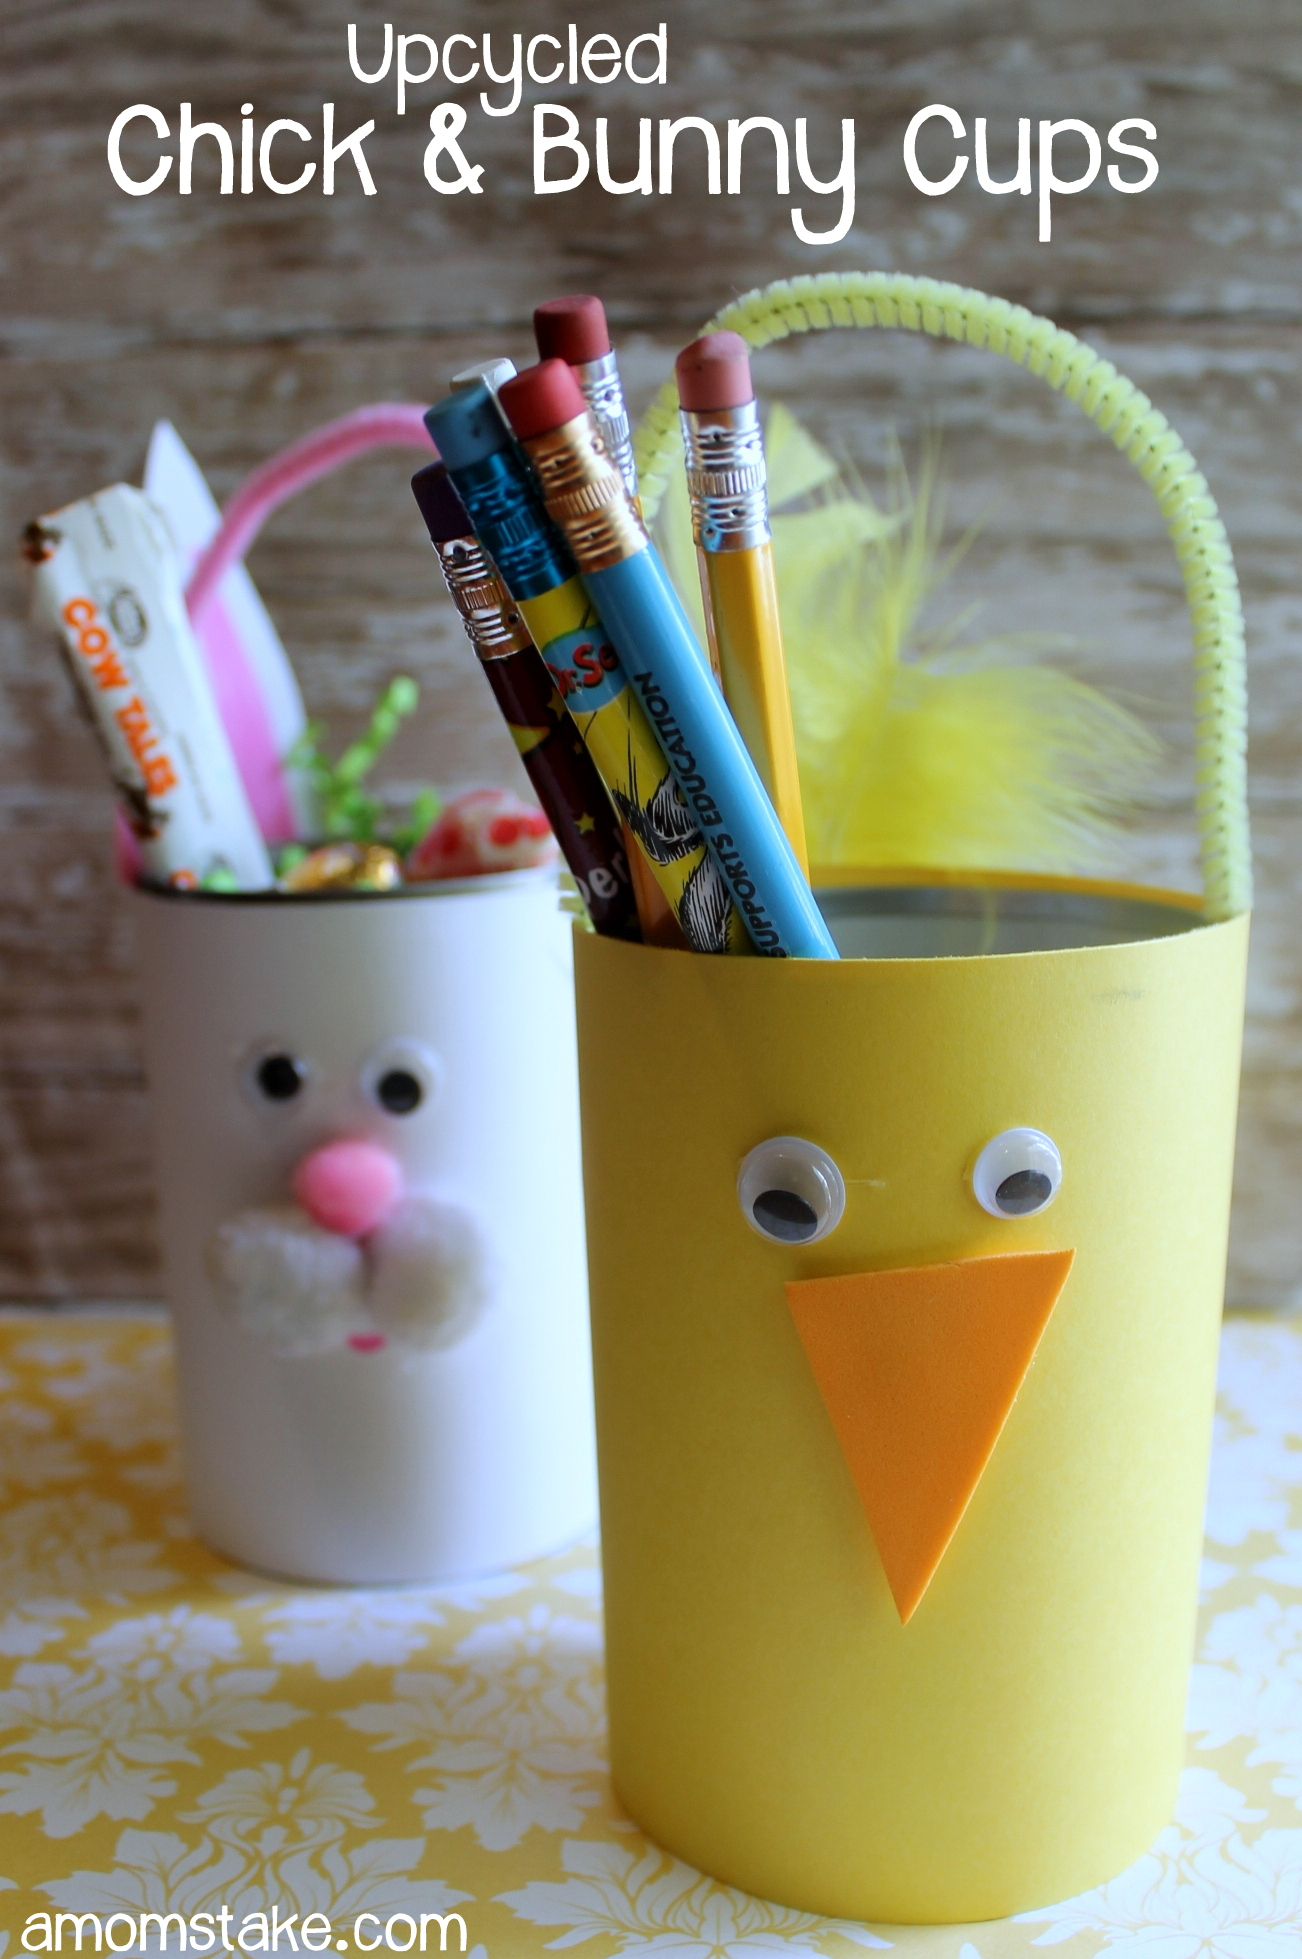 Upcycled-Chick-Bunny-Cups